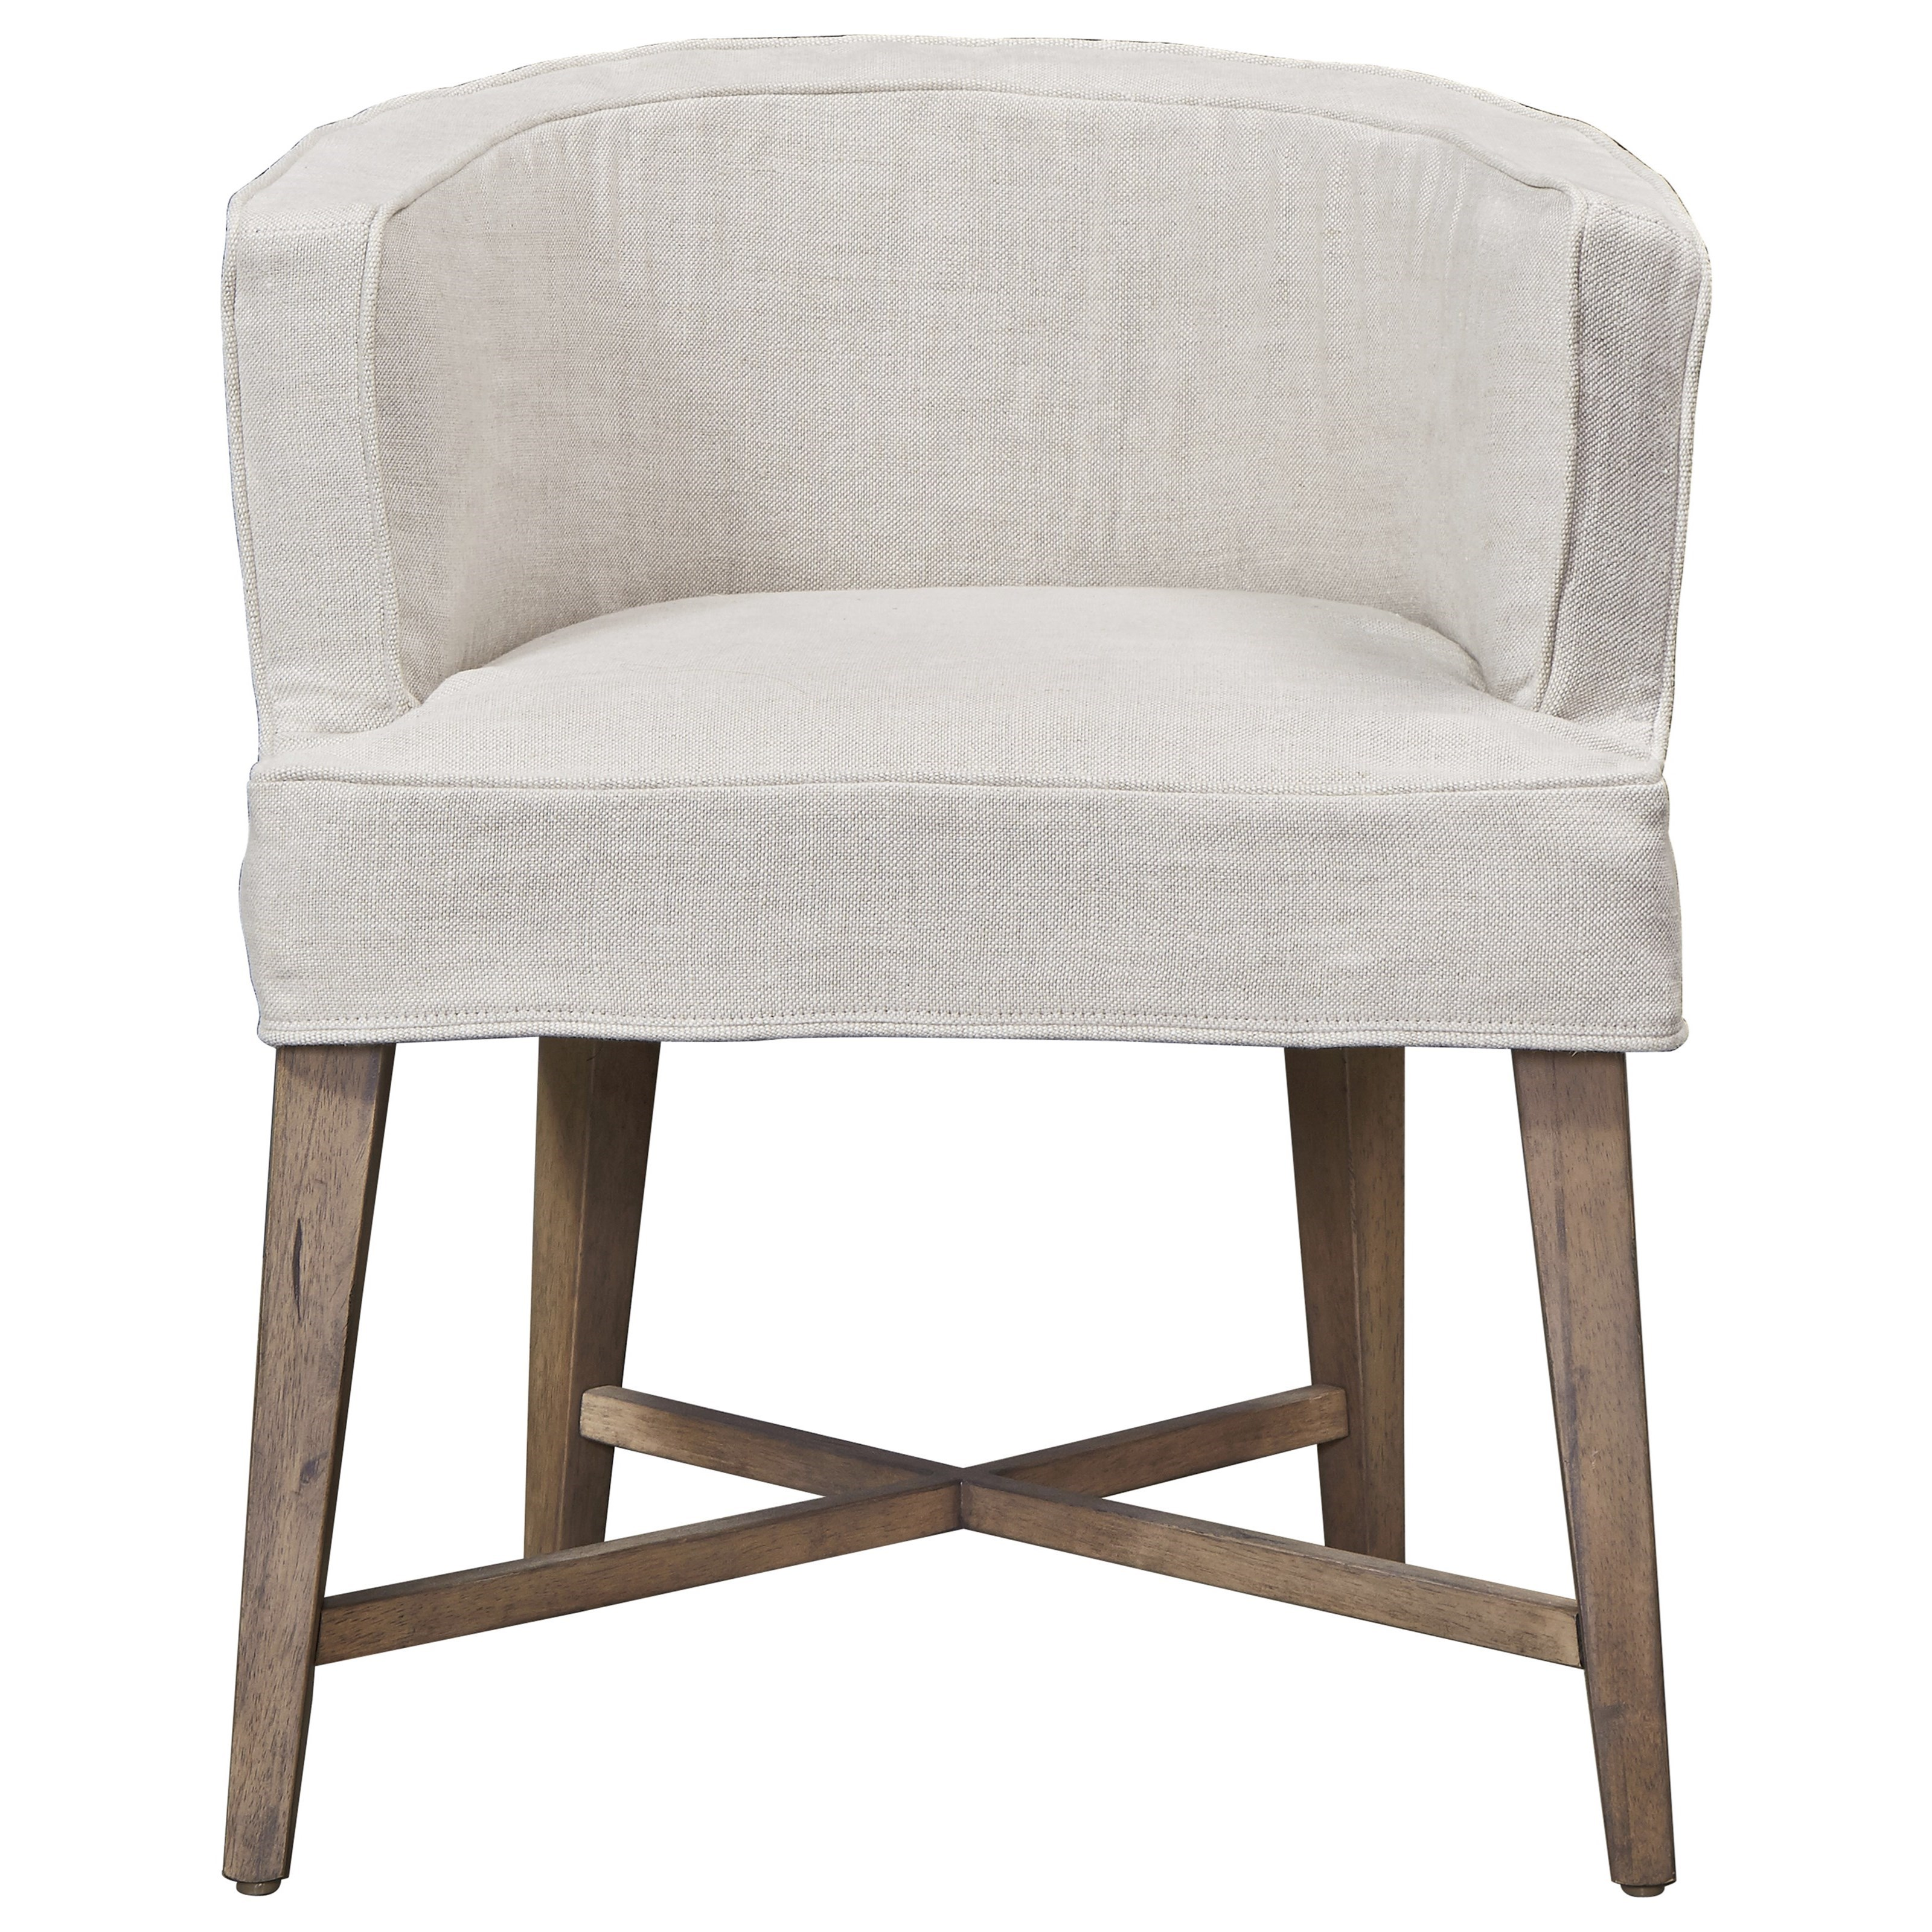 Universal Authenticity Slip Covered Barrel Chair - Item Number: 572625-RTA